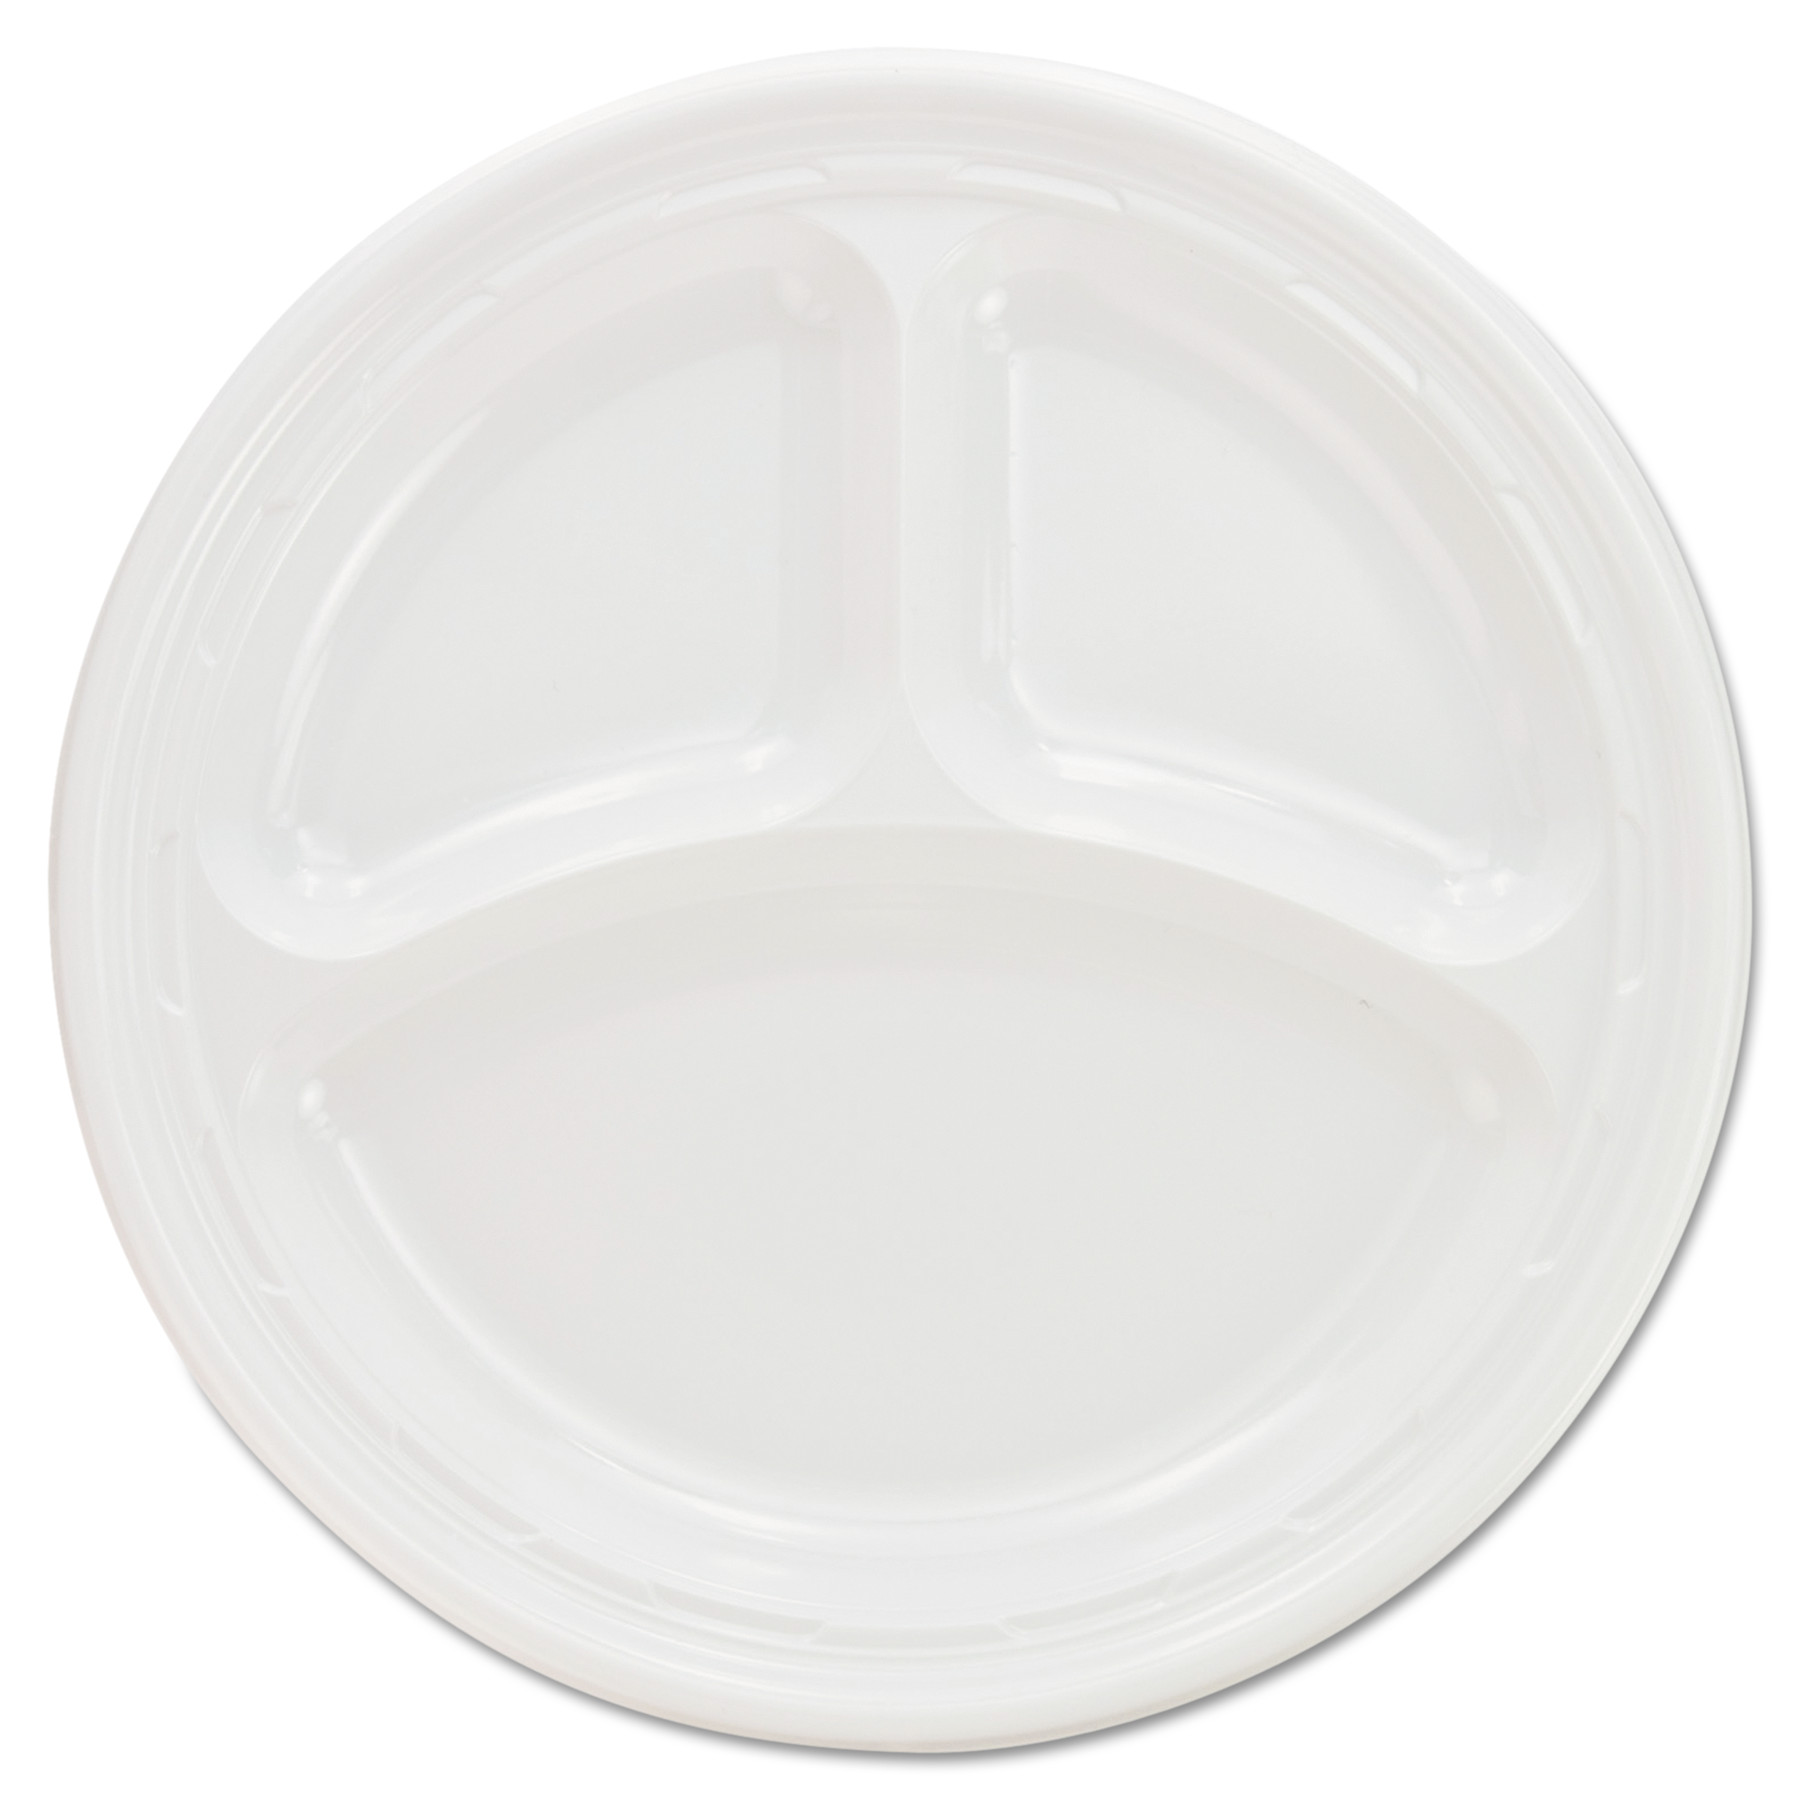 Dart Plastic Plates 9 Inches White 3 Compartments Round 125/  sc 1 st  Walmart.com & Dart Plastic Plates 9 Inches White 3 Compartments Round 125 ...